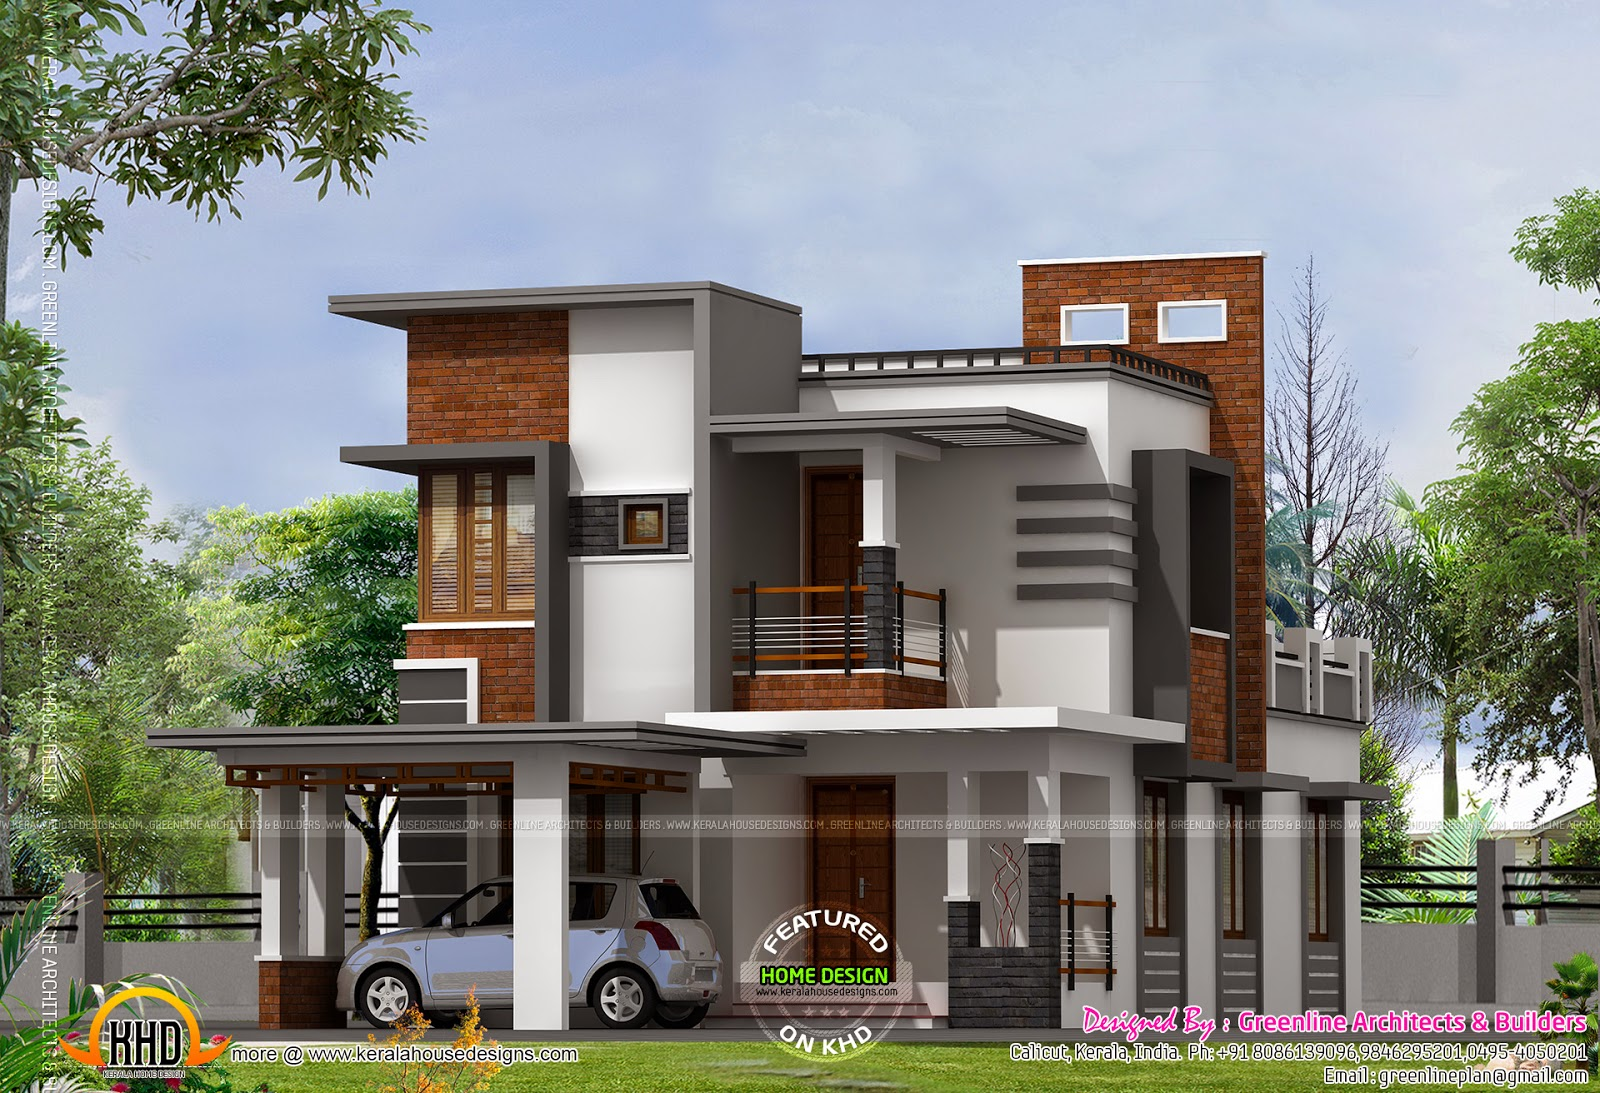 Low cost contemporary house kerala home design and floor for Cost of house plans